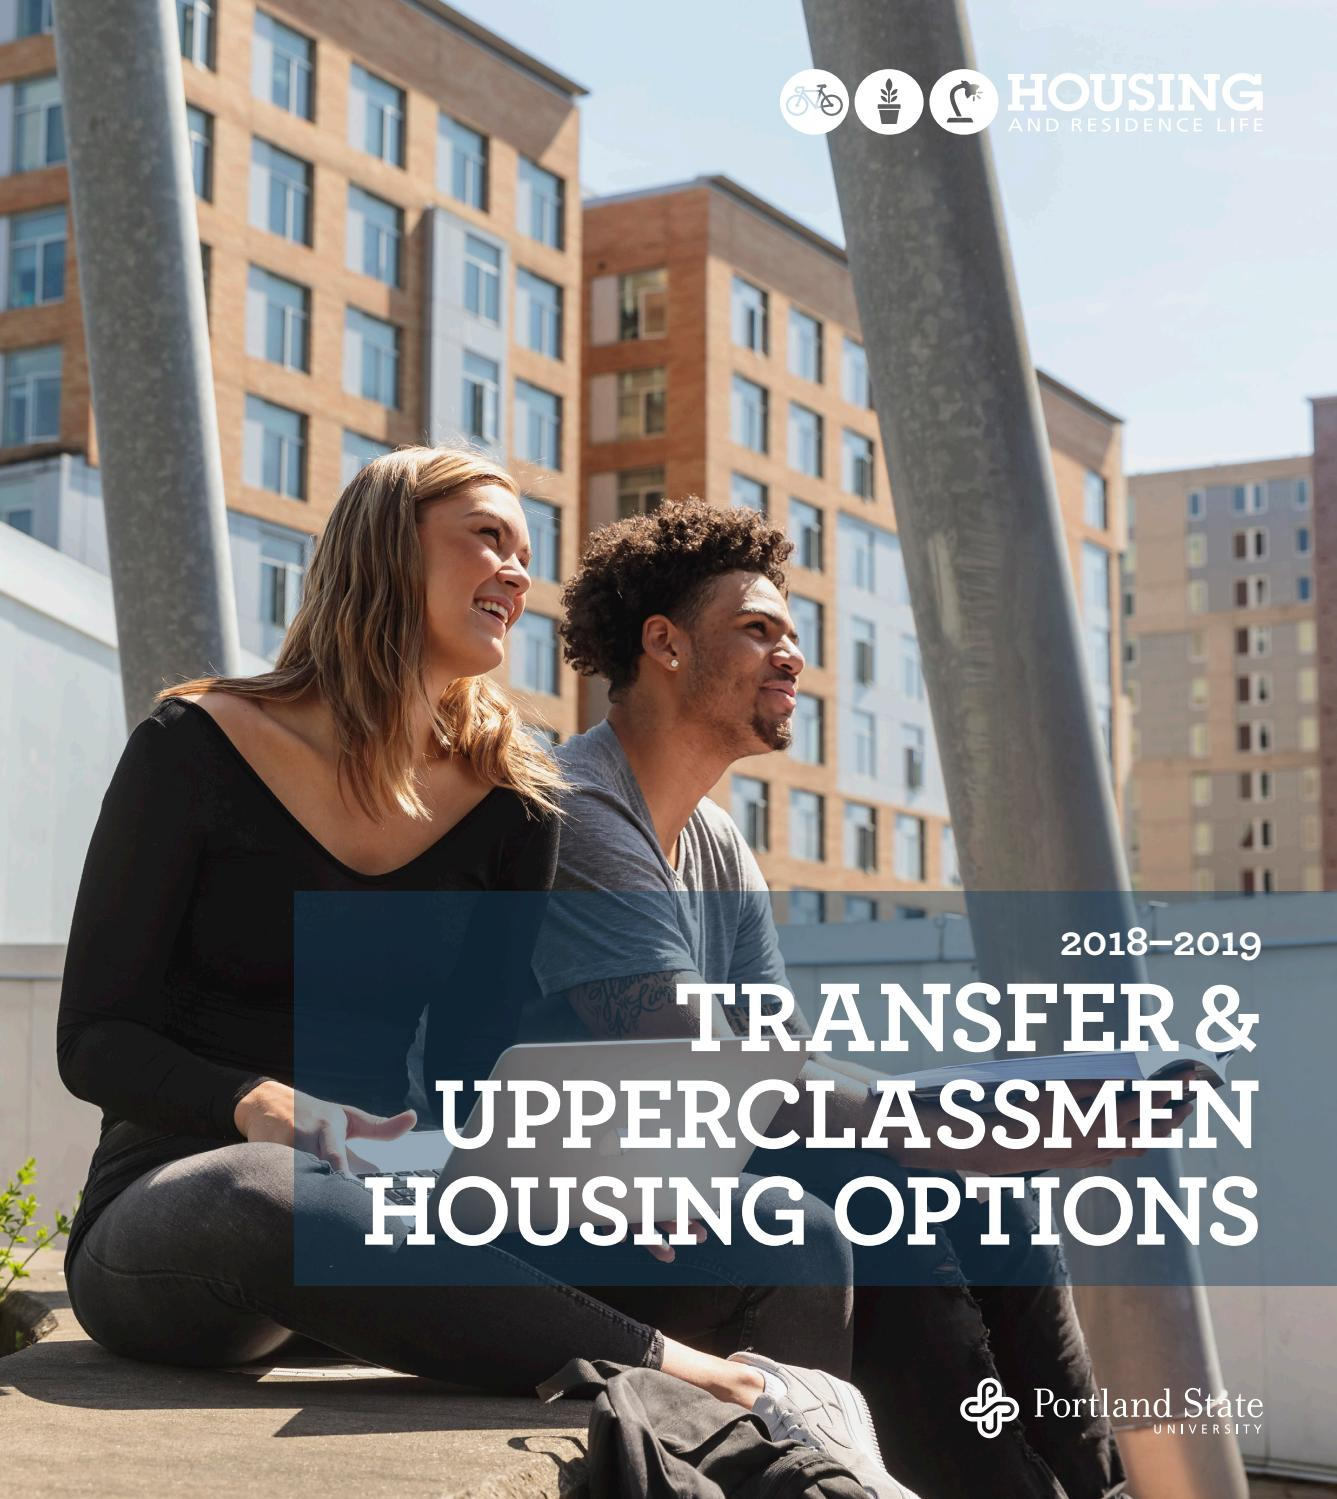 Housing for large families in the 2018-2019 year 66